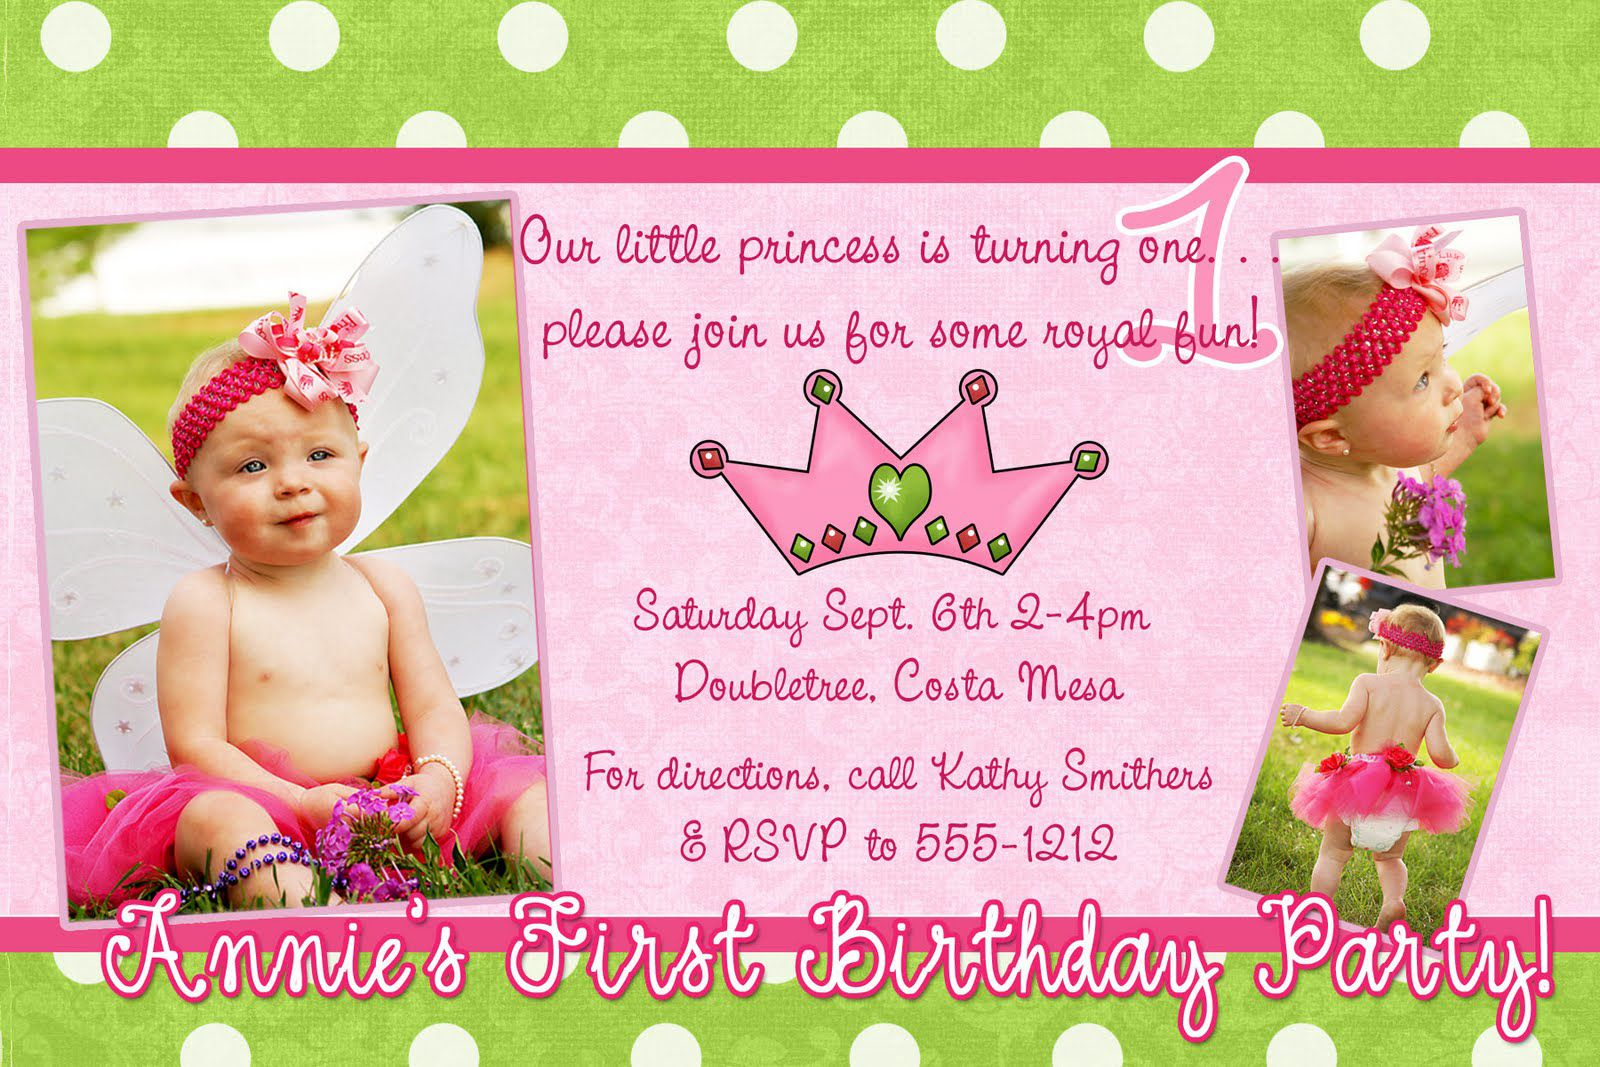 Kids Birthday Invitation Wording That We Can Make Sample - Birthday invitation messages for 5 year old boy